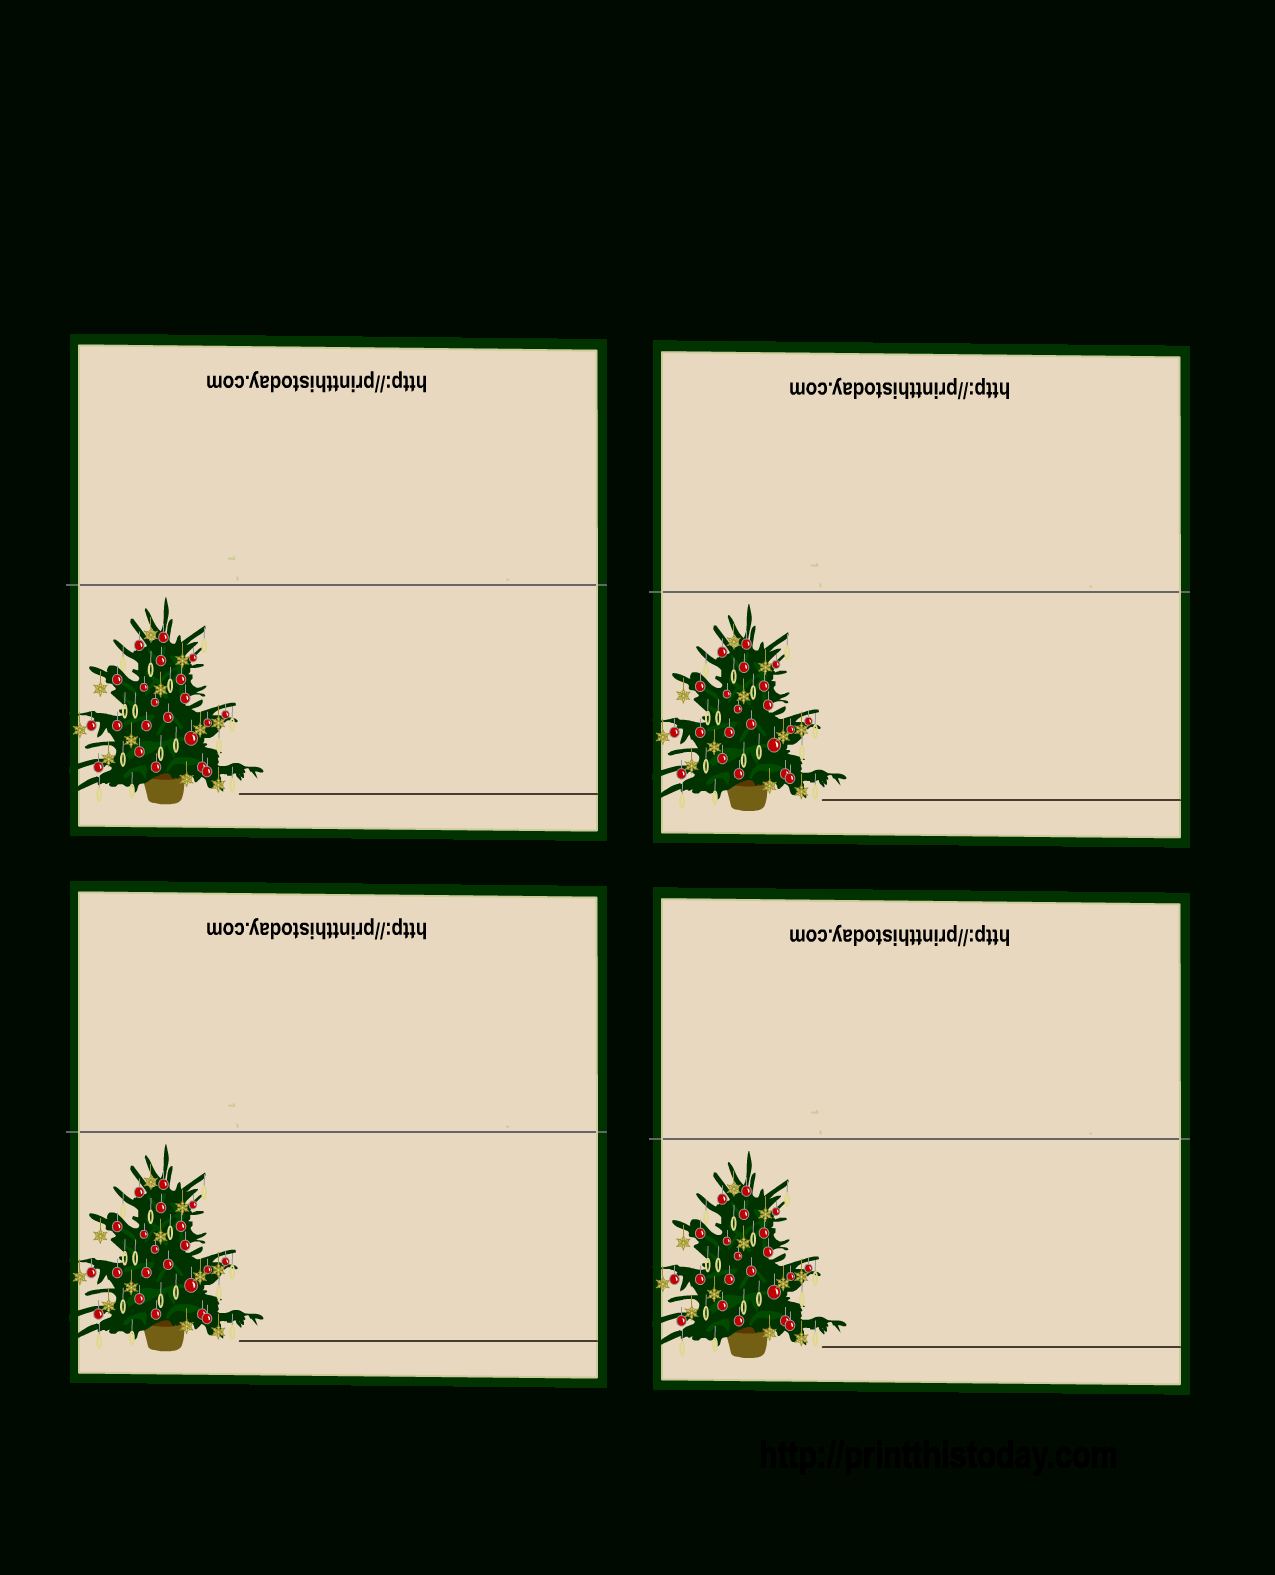 Christmas Free Printable Table Seating Cards - 5.15.hus-Noorderpad.de • - Free Printable Place Card Templates Christmas